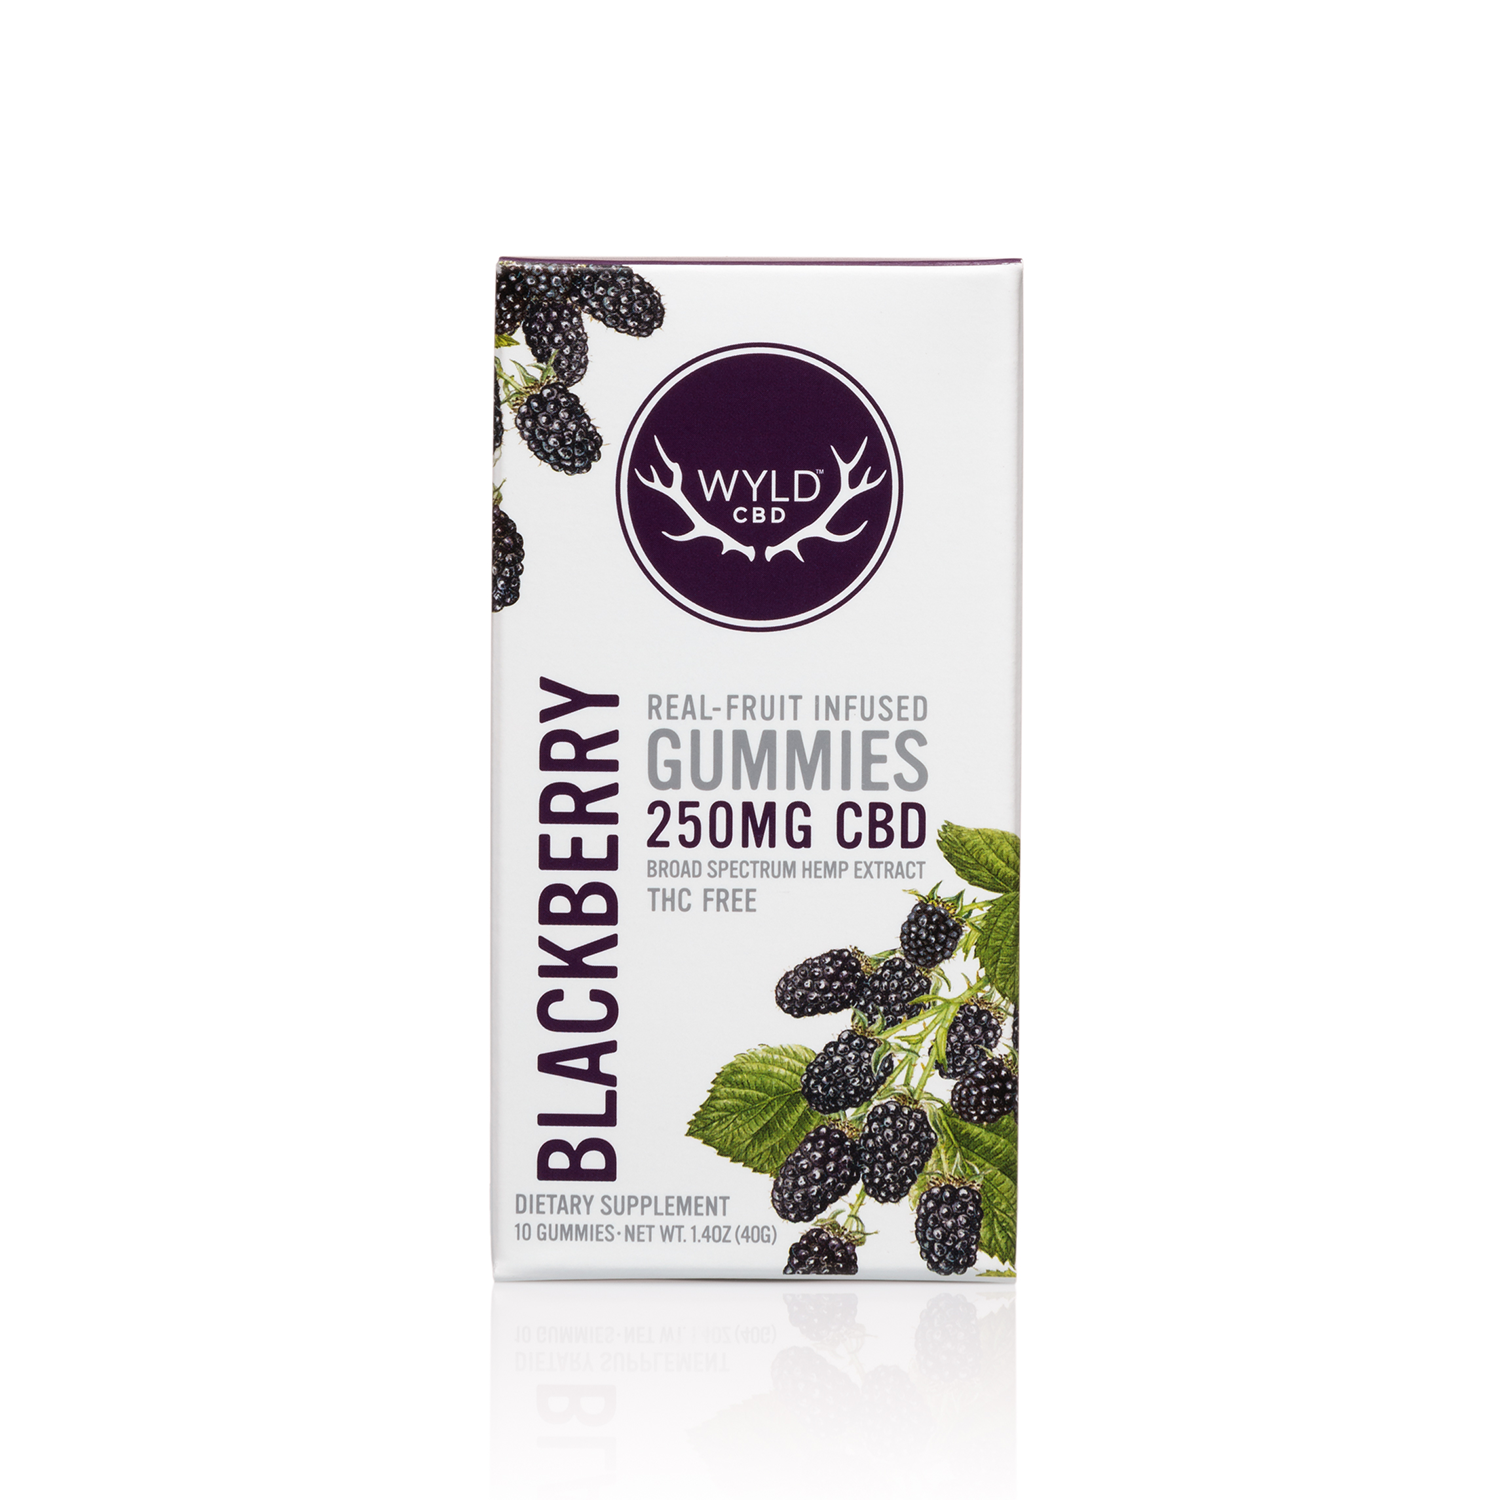 Wyld Vegan Gummies | Vegan BlackBerry - Broad Spectrum CBD